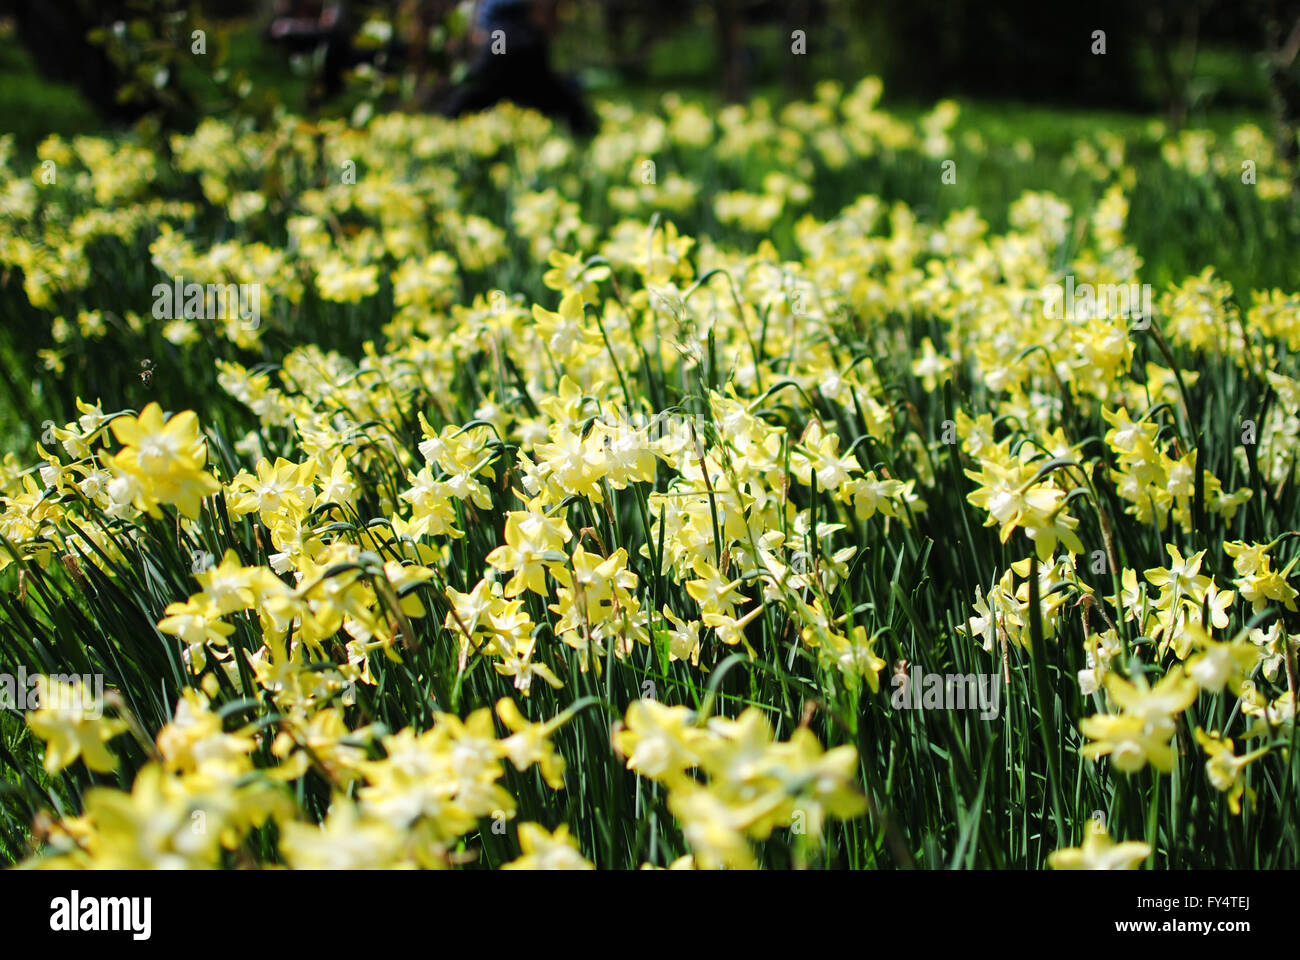 The daffodil is the national flower of Wales. Il is also called jonquil. Stock Photo